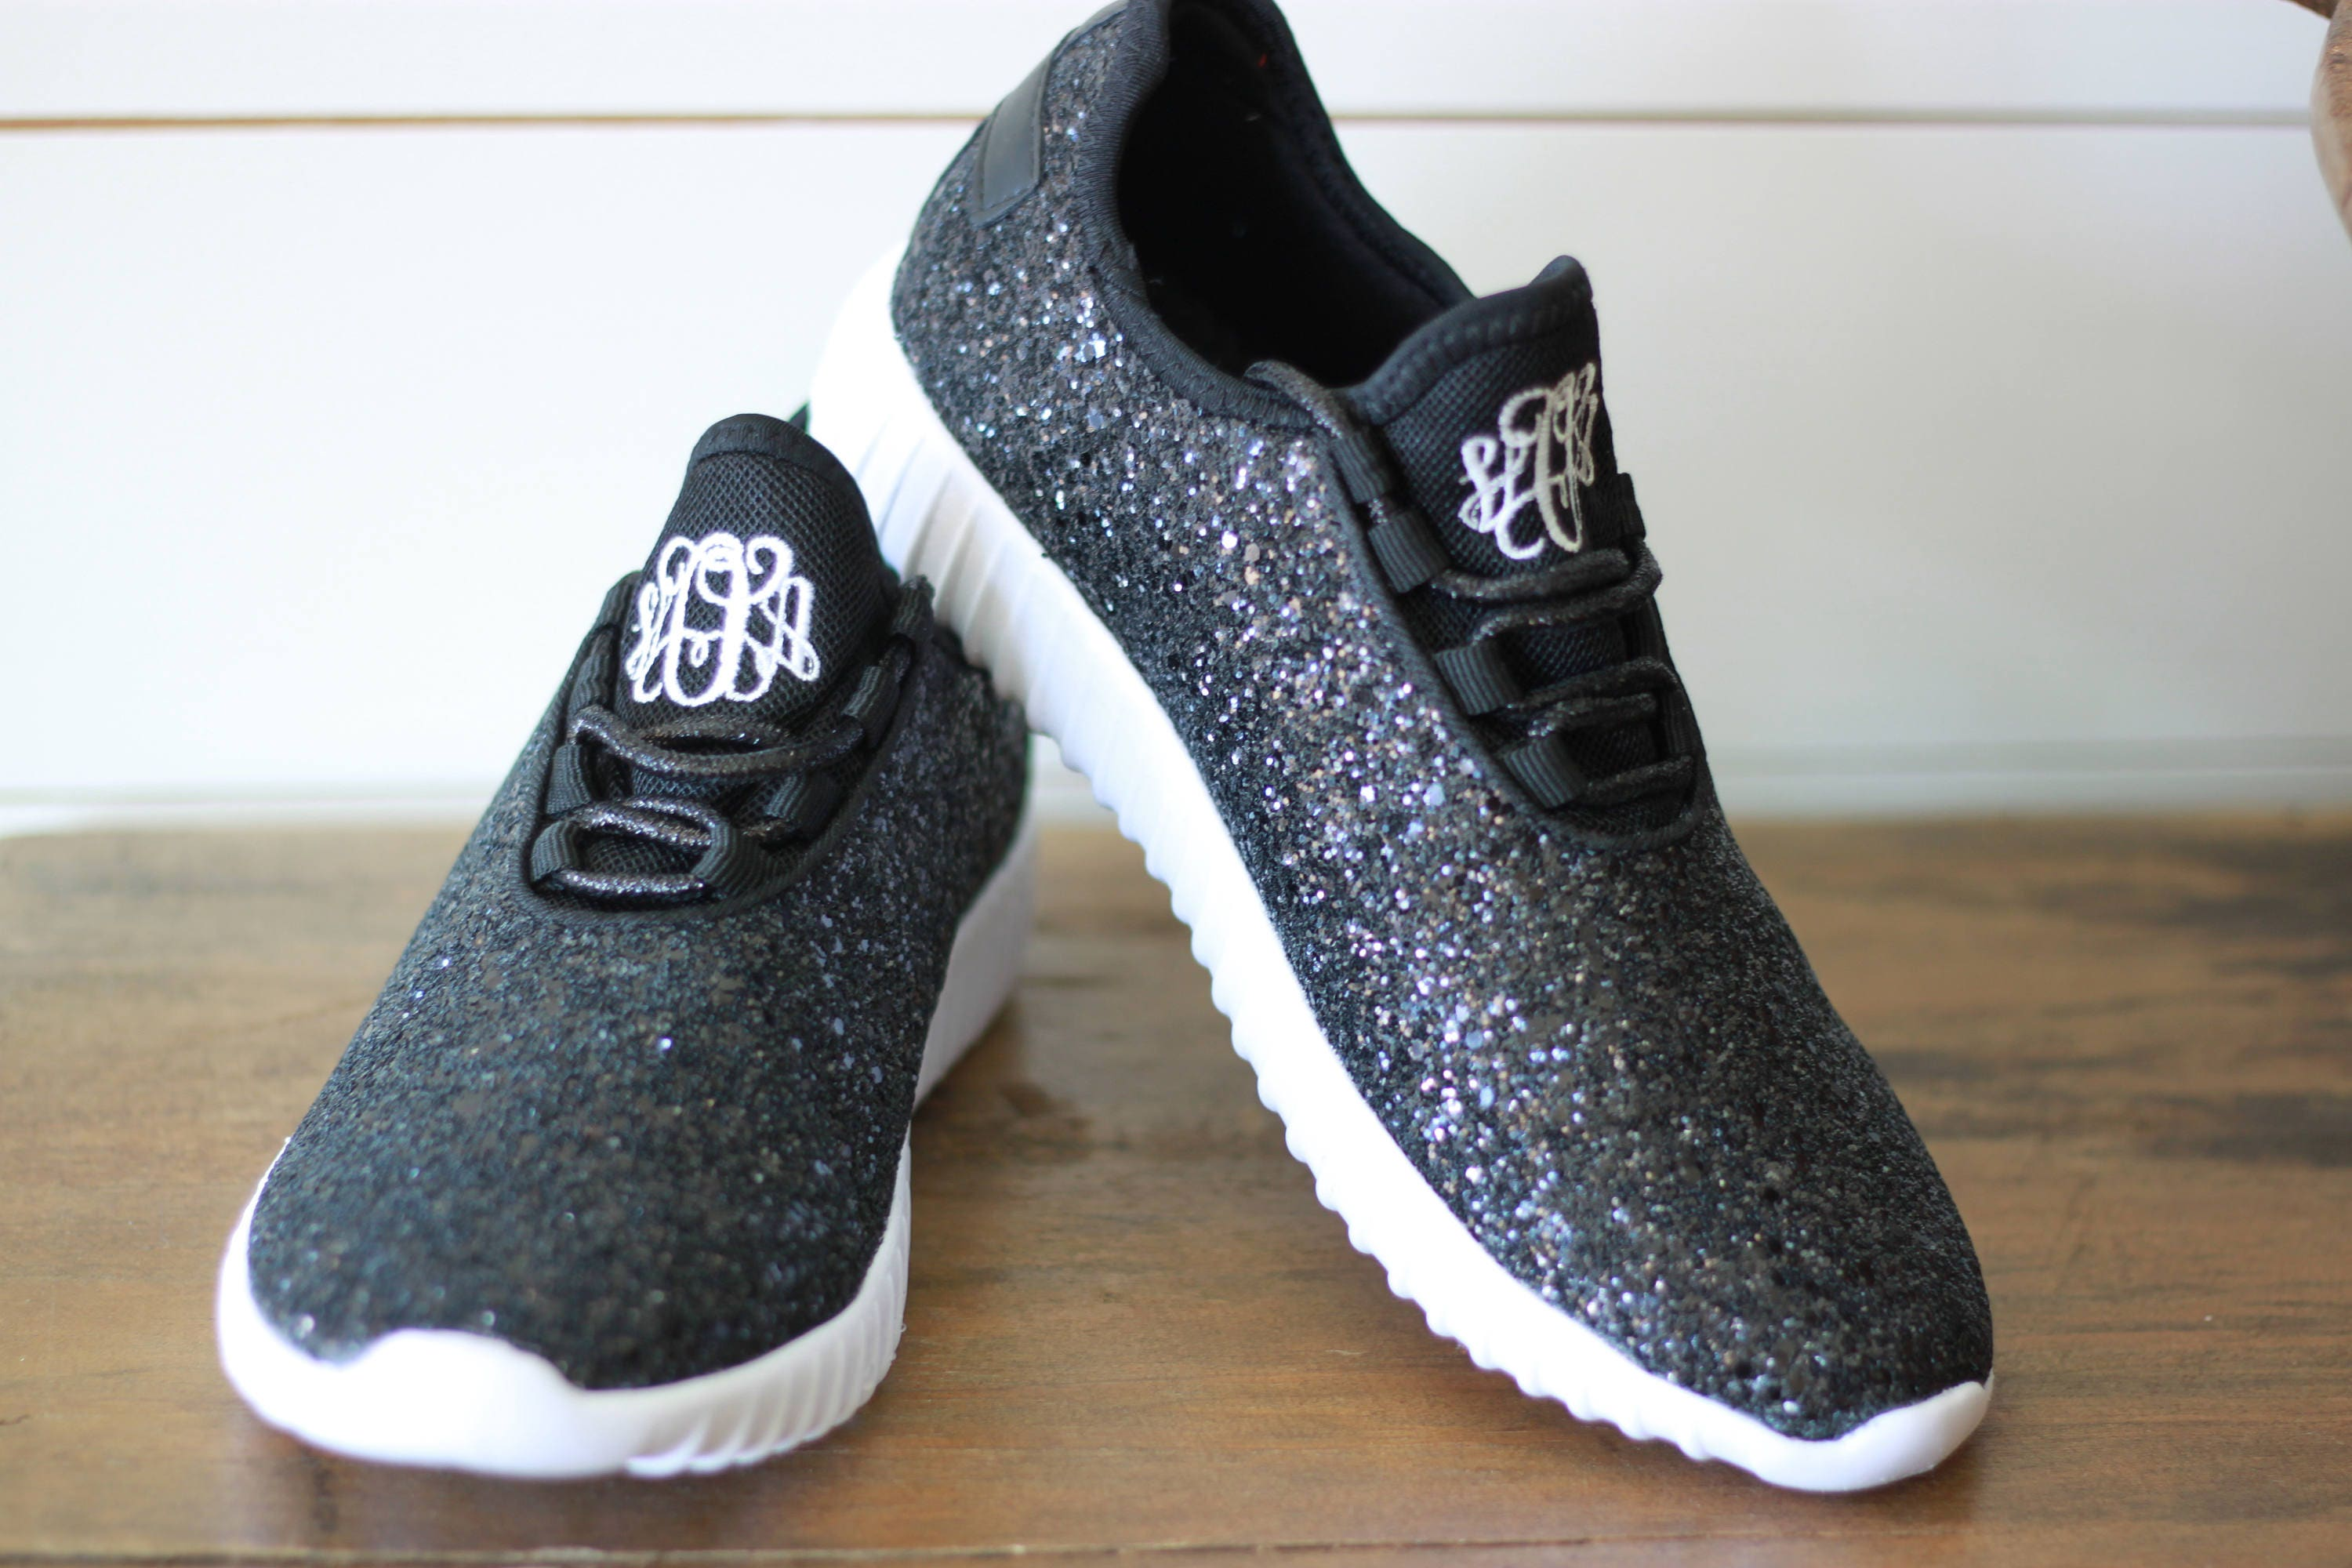 3cfc72a9d5271 Glitter Bomb Sneakers / Glitter Kicks / Personalized Womens shoes / Black  Tennis Shoes / Glitter Shoes Monogrammed / Glitter Tennis Shoe